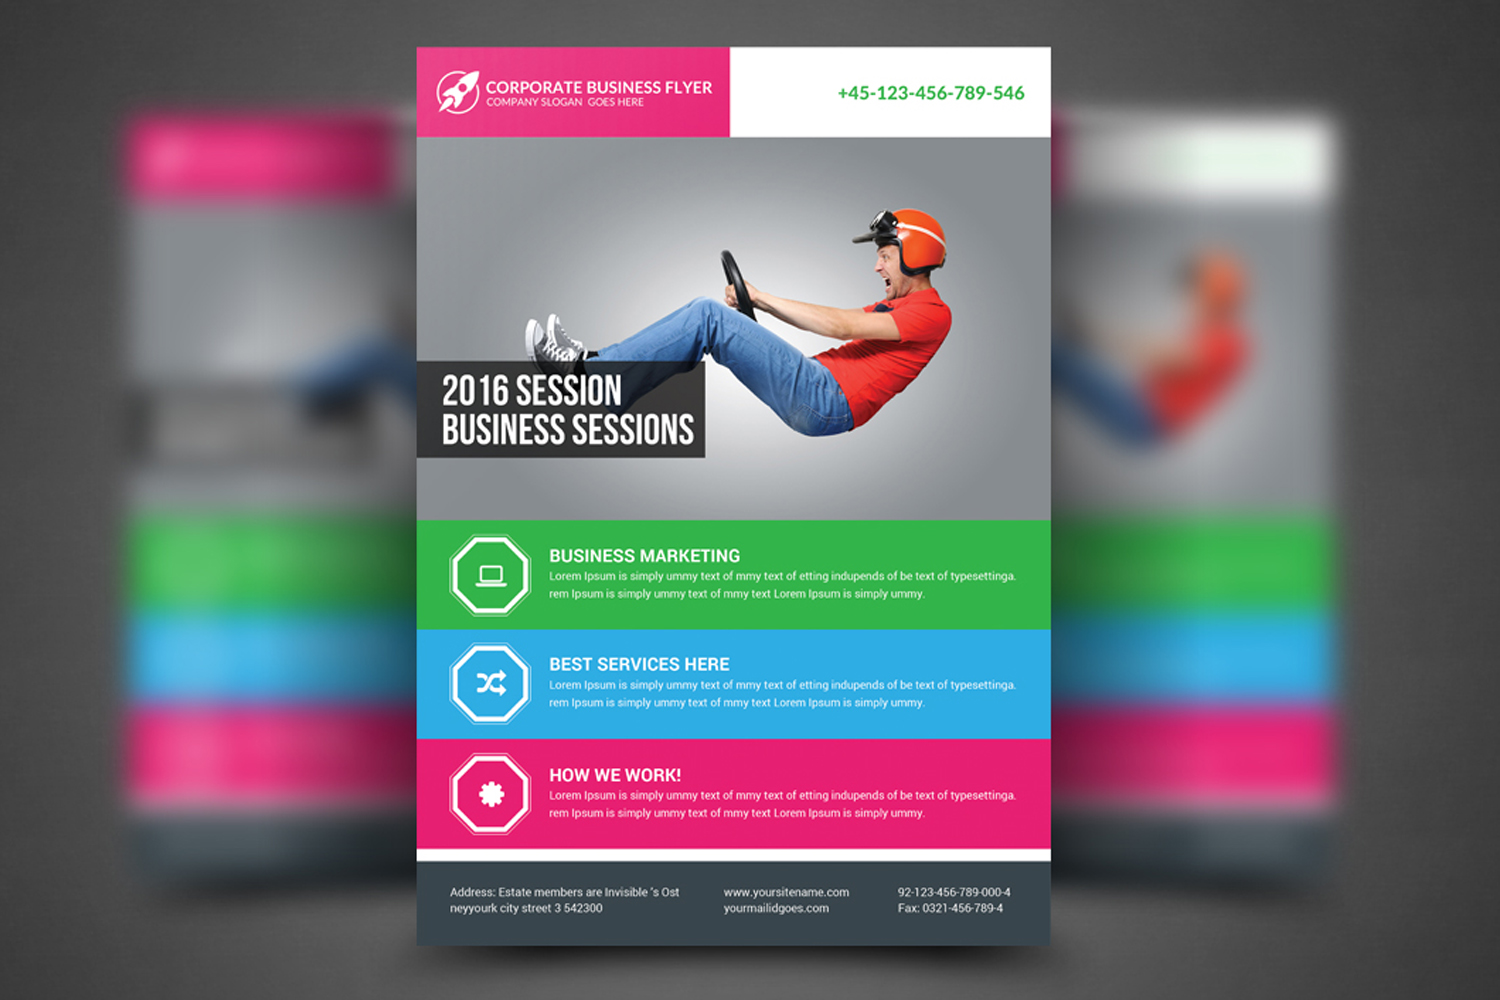 Global Business Agency Psd Flyer example image 1